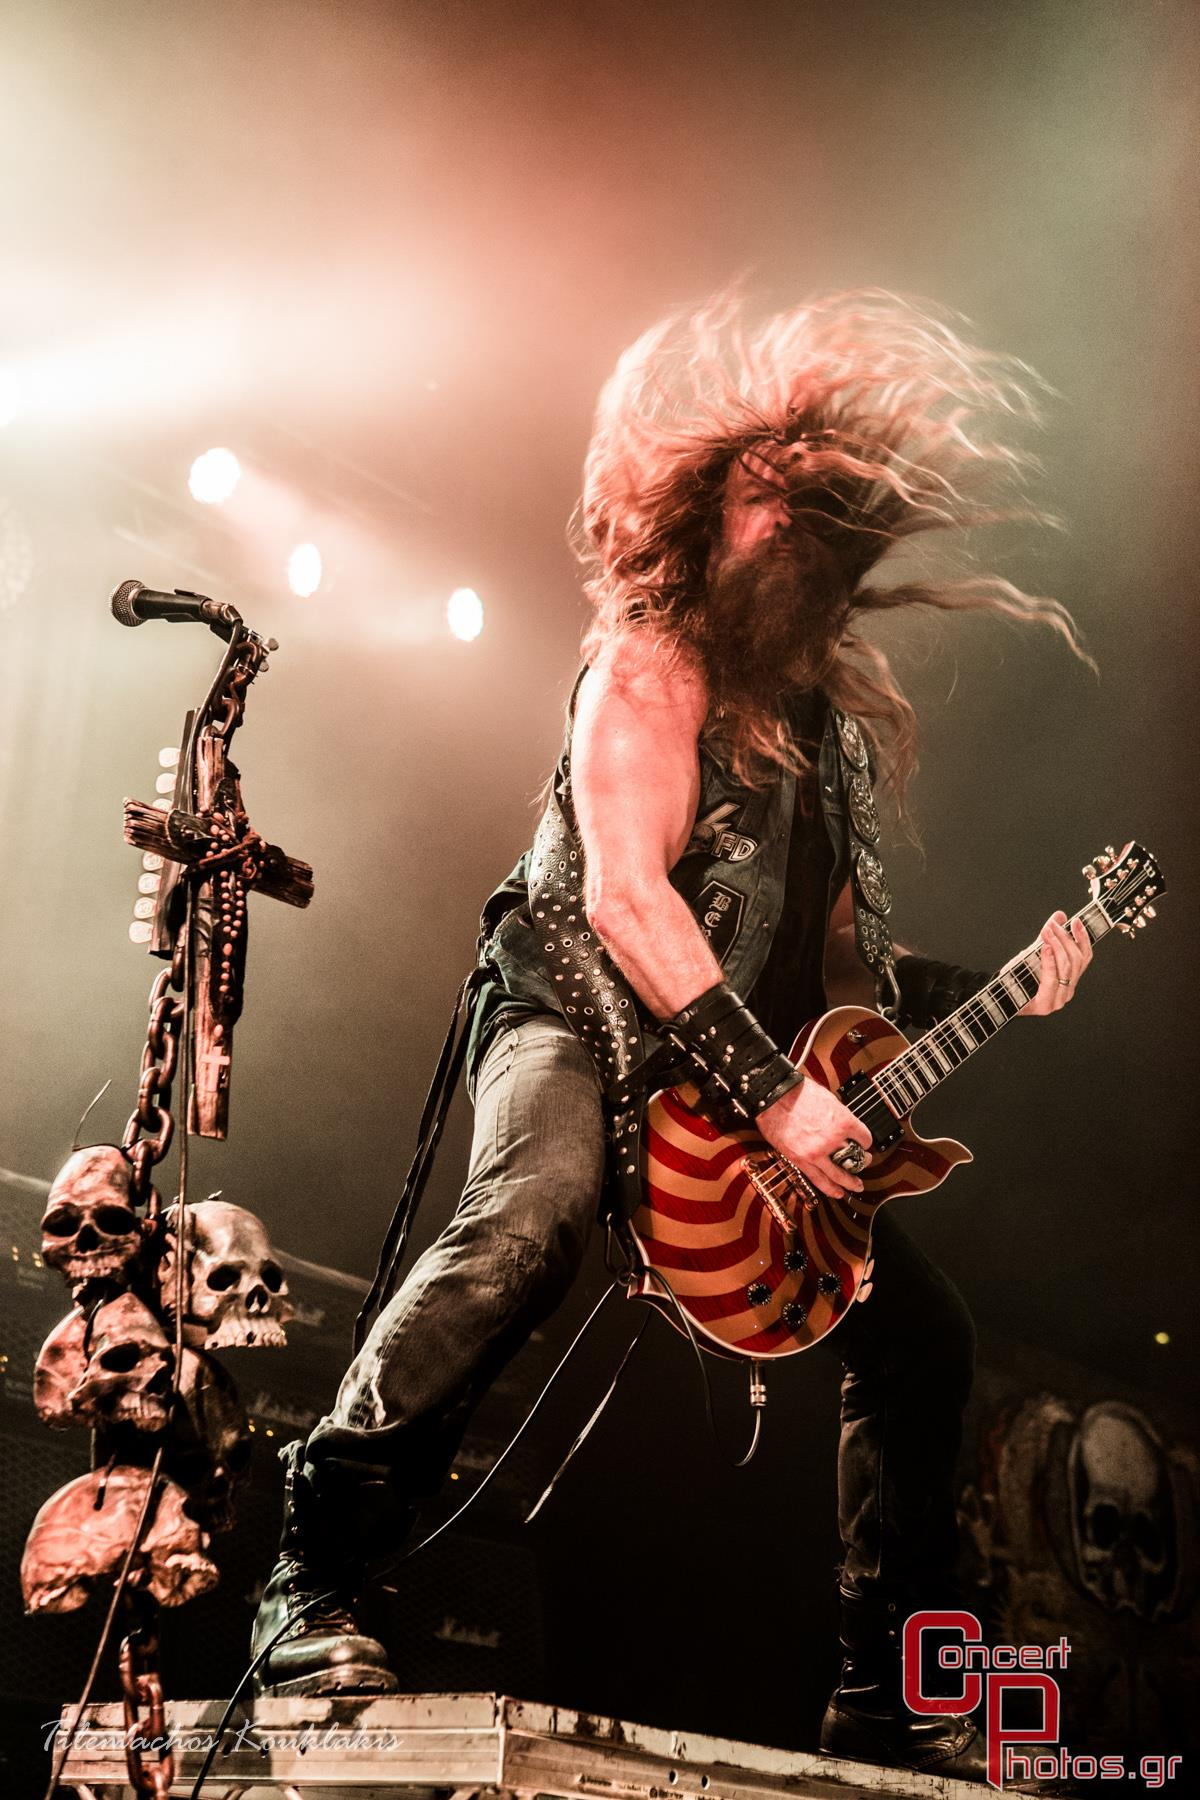 Black Label Society- Potergeist-Black Label Society- Potergeist photographer:  - BLS_06